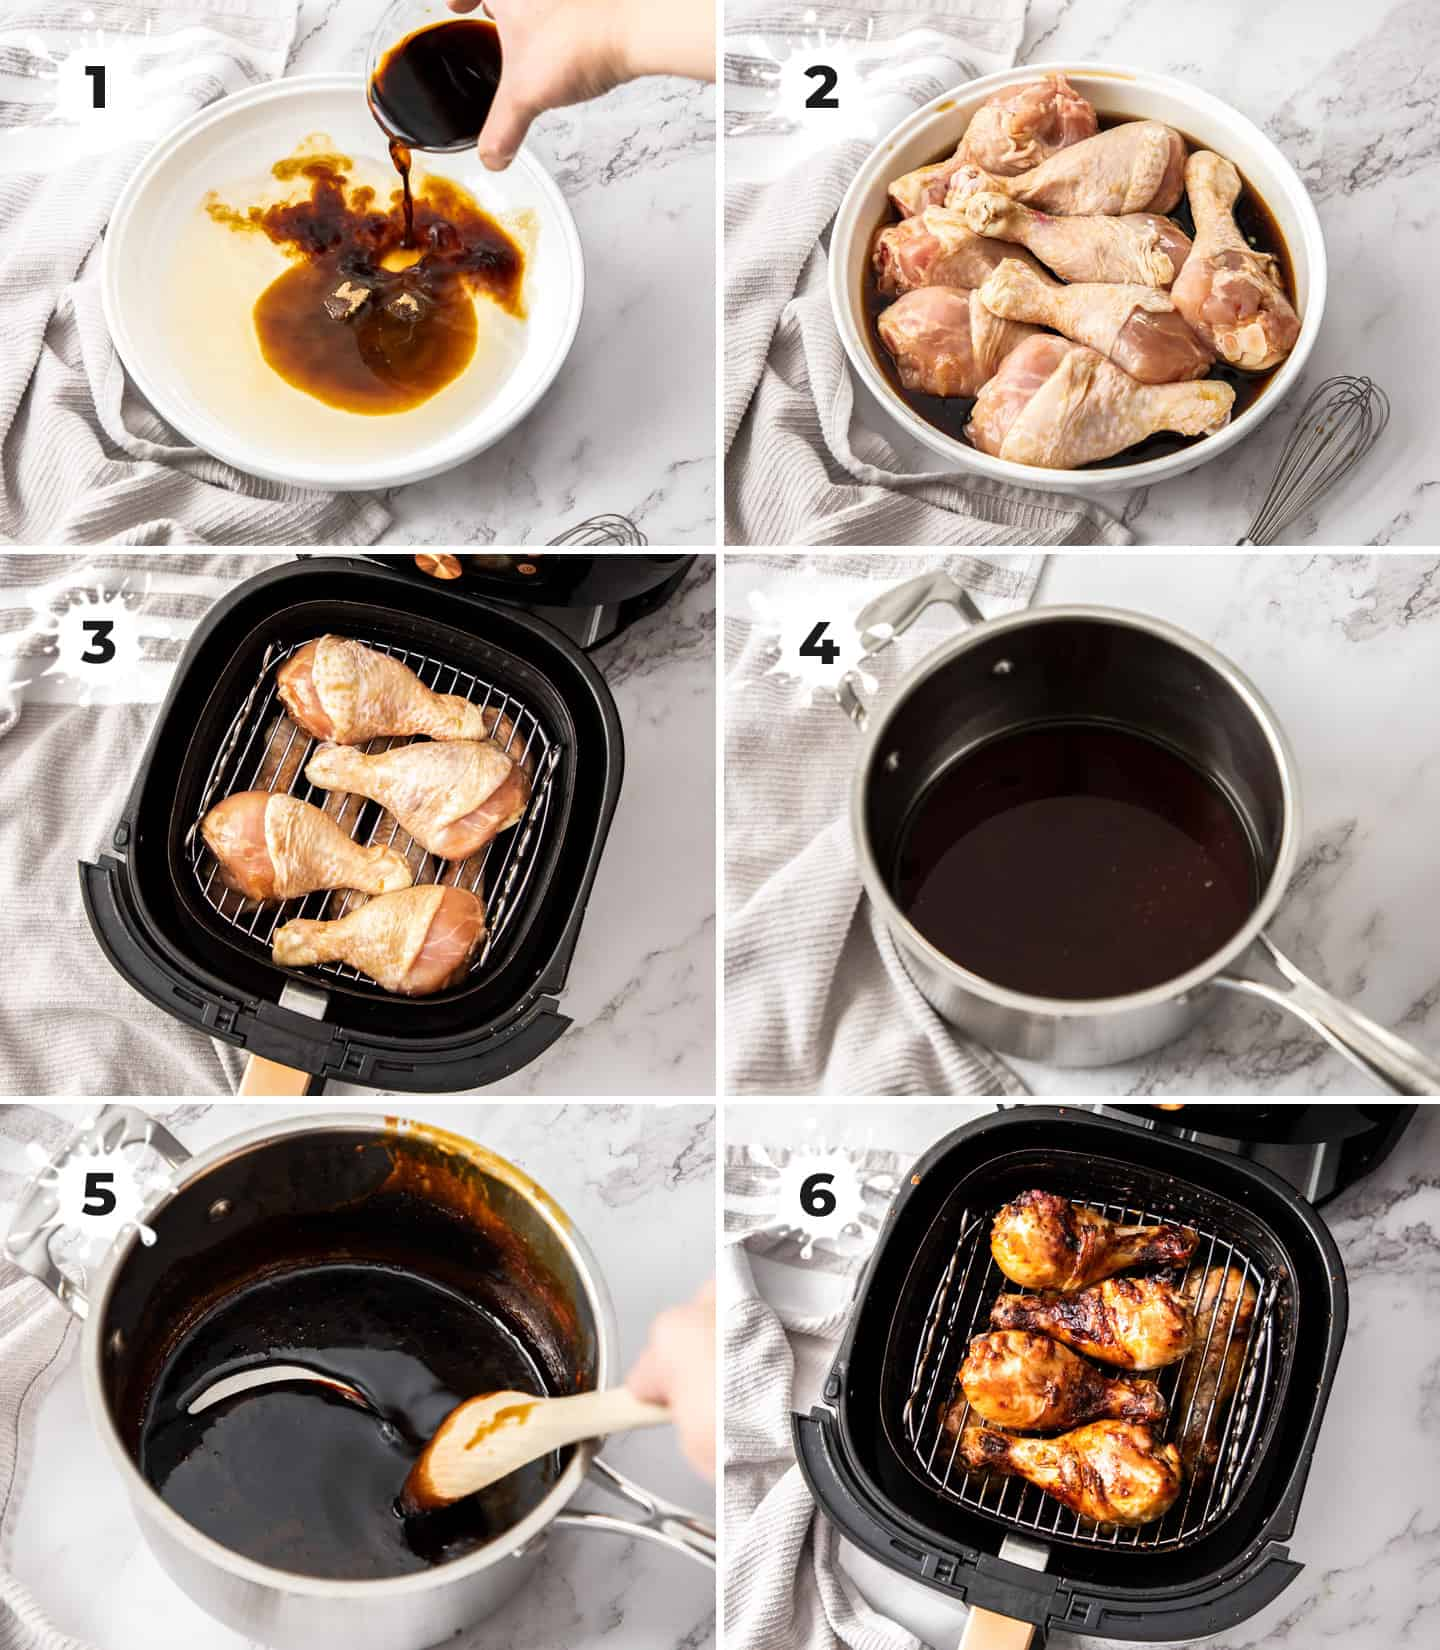 A collage of 6 images showing how to make teriyaki chicken drumsticks.